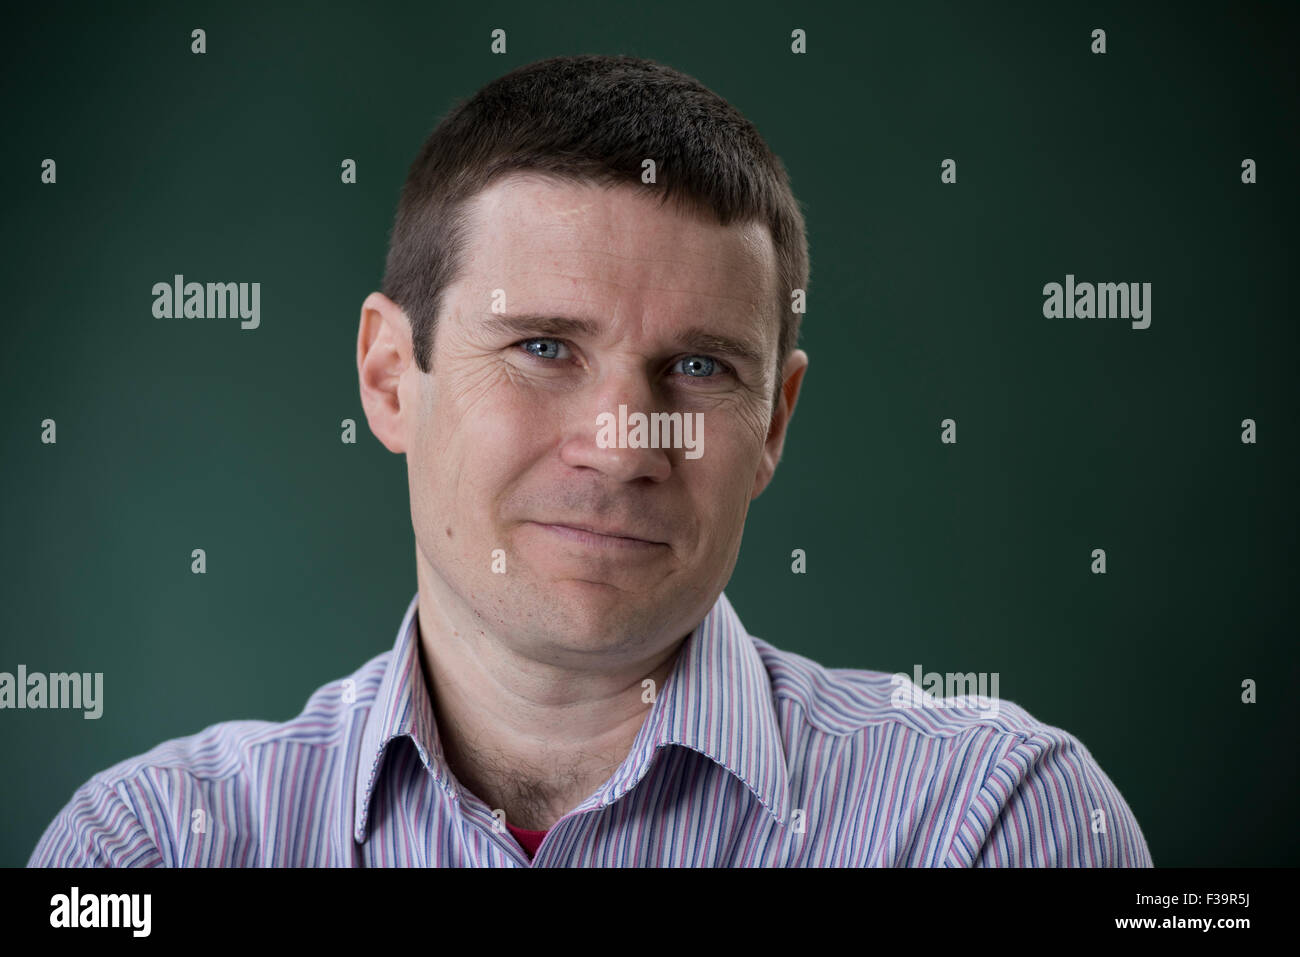 Scottish physician and writer Gavin Francis. - Stock Image